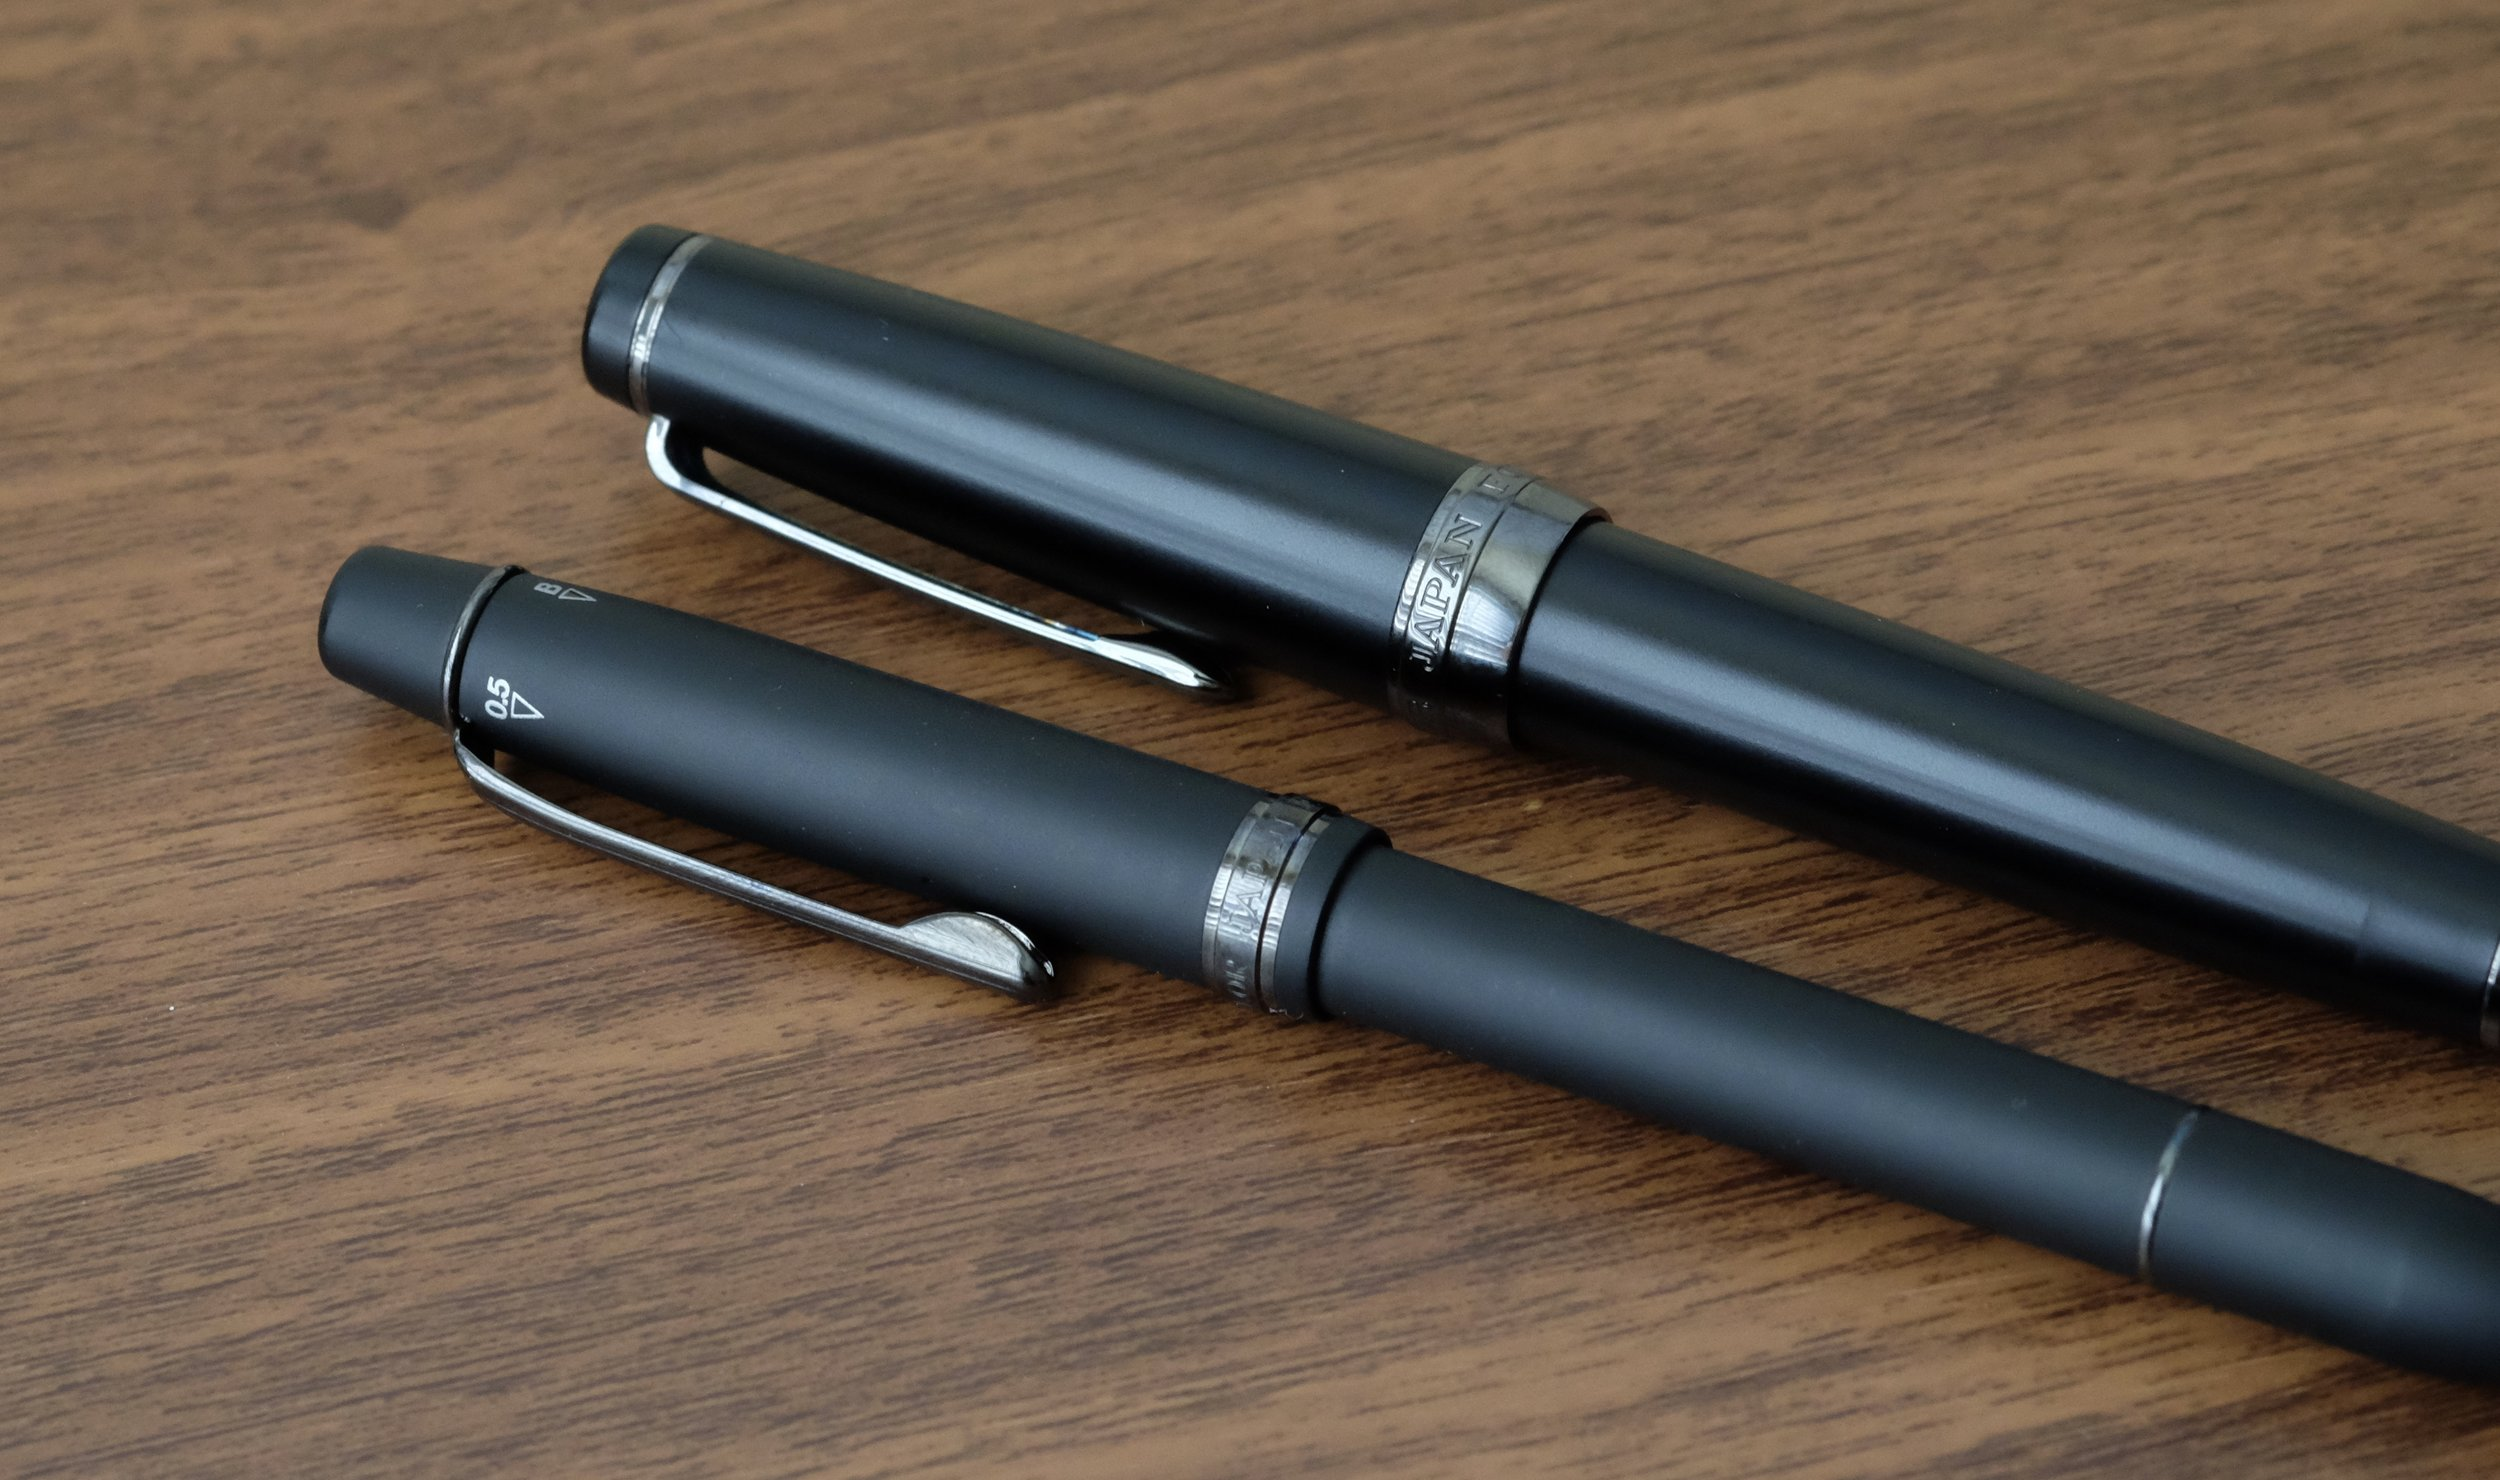 The black ion-plated trim on the multi pen matches the trim on the Professional Gear fountain pen nicely.